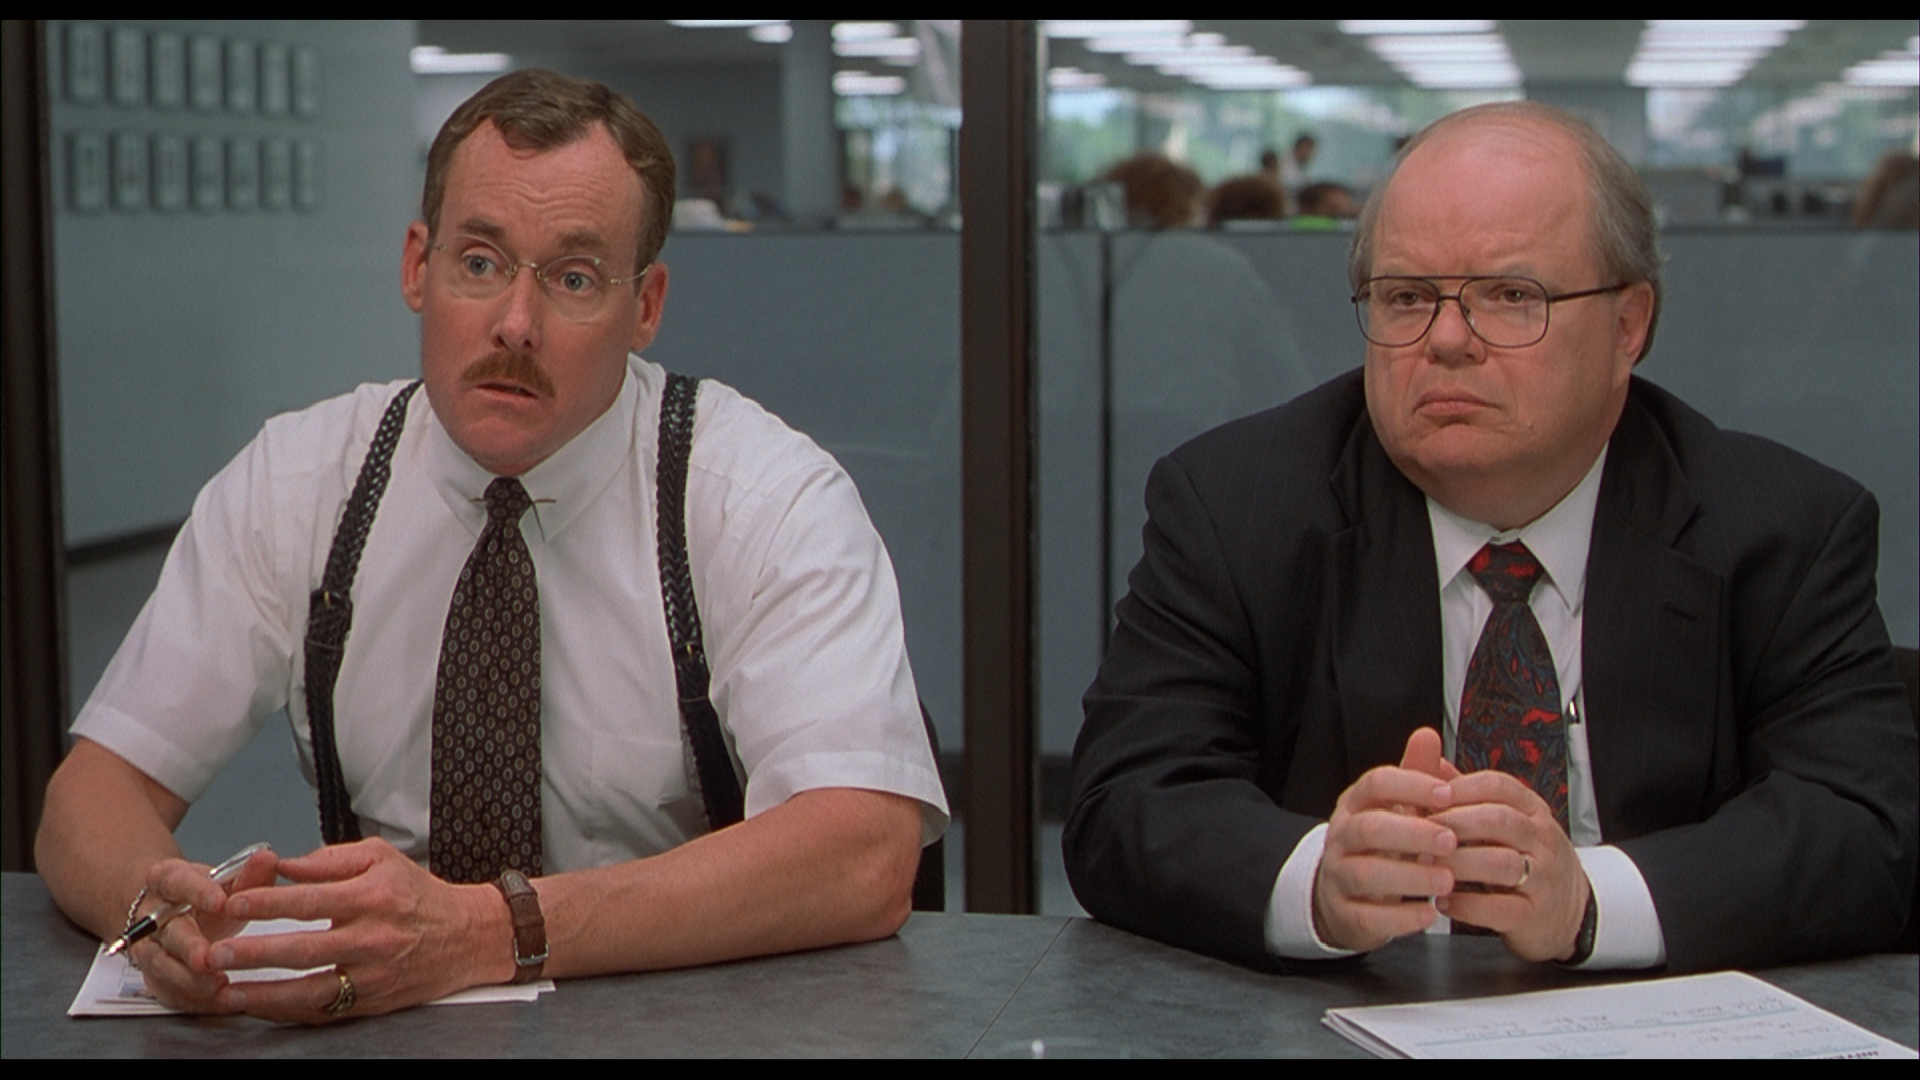 pics of office space. We Pics Of Office Space